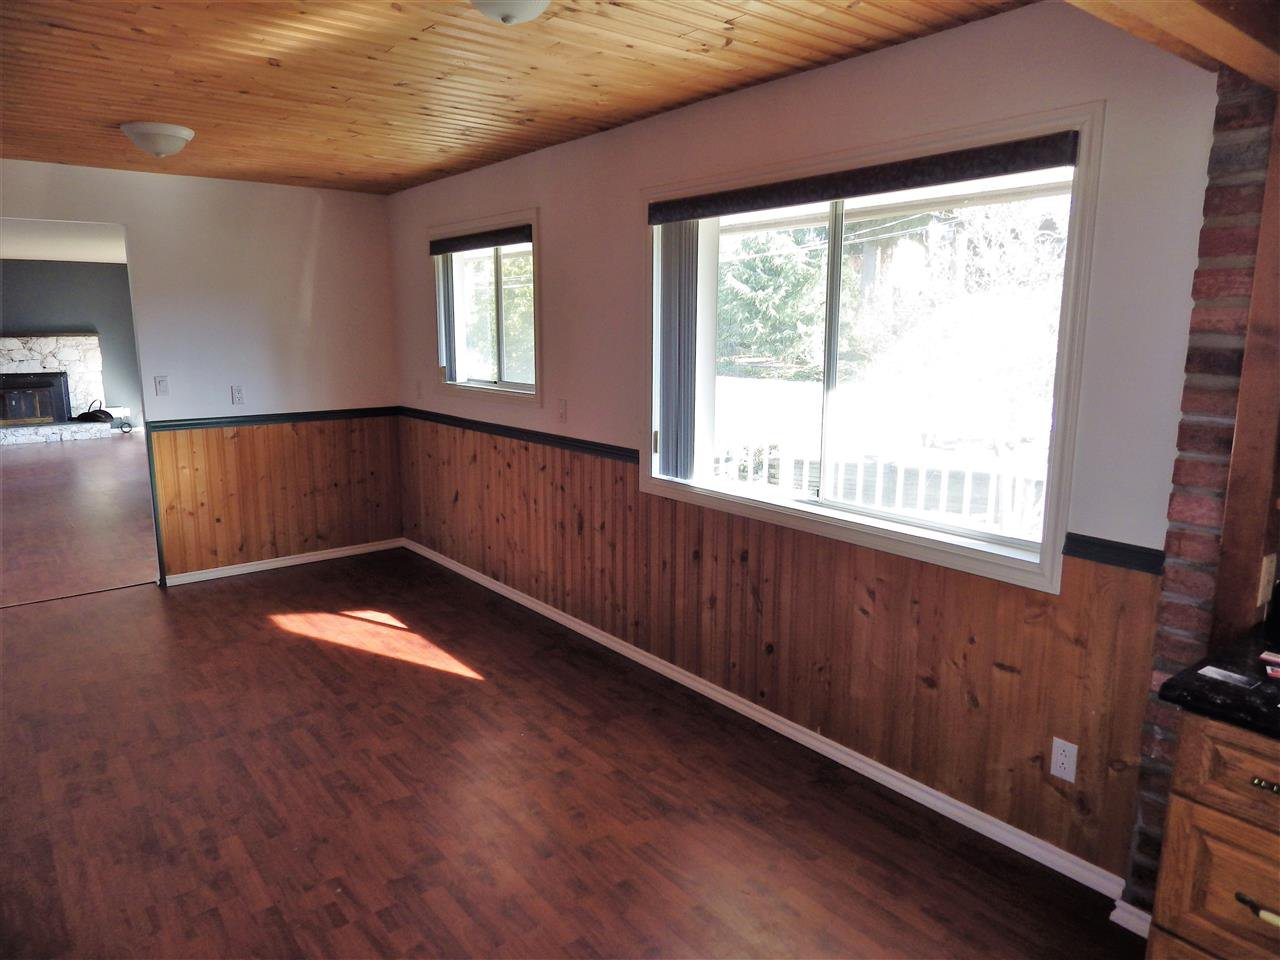 Photo 13: Photos: 4767 FIR Road in Sechelt: Sechelt District House for sale (Sunshine Coast)  : MLS®# R2342148